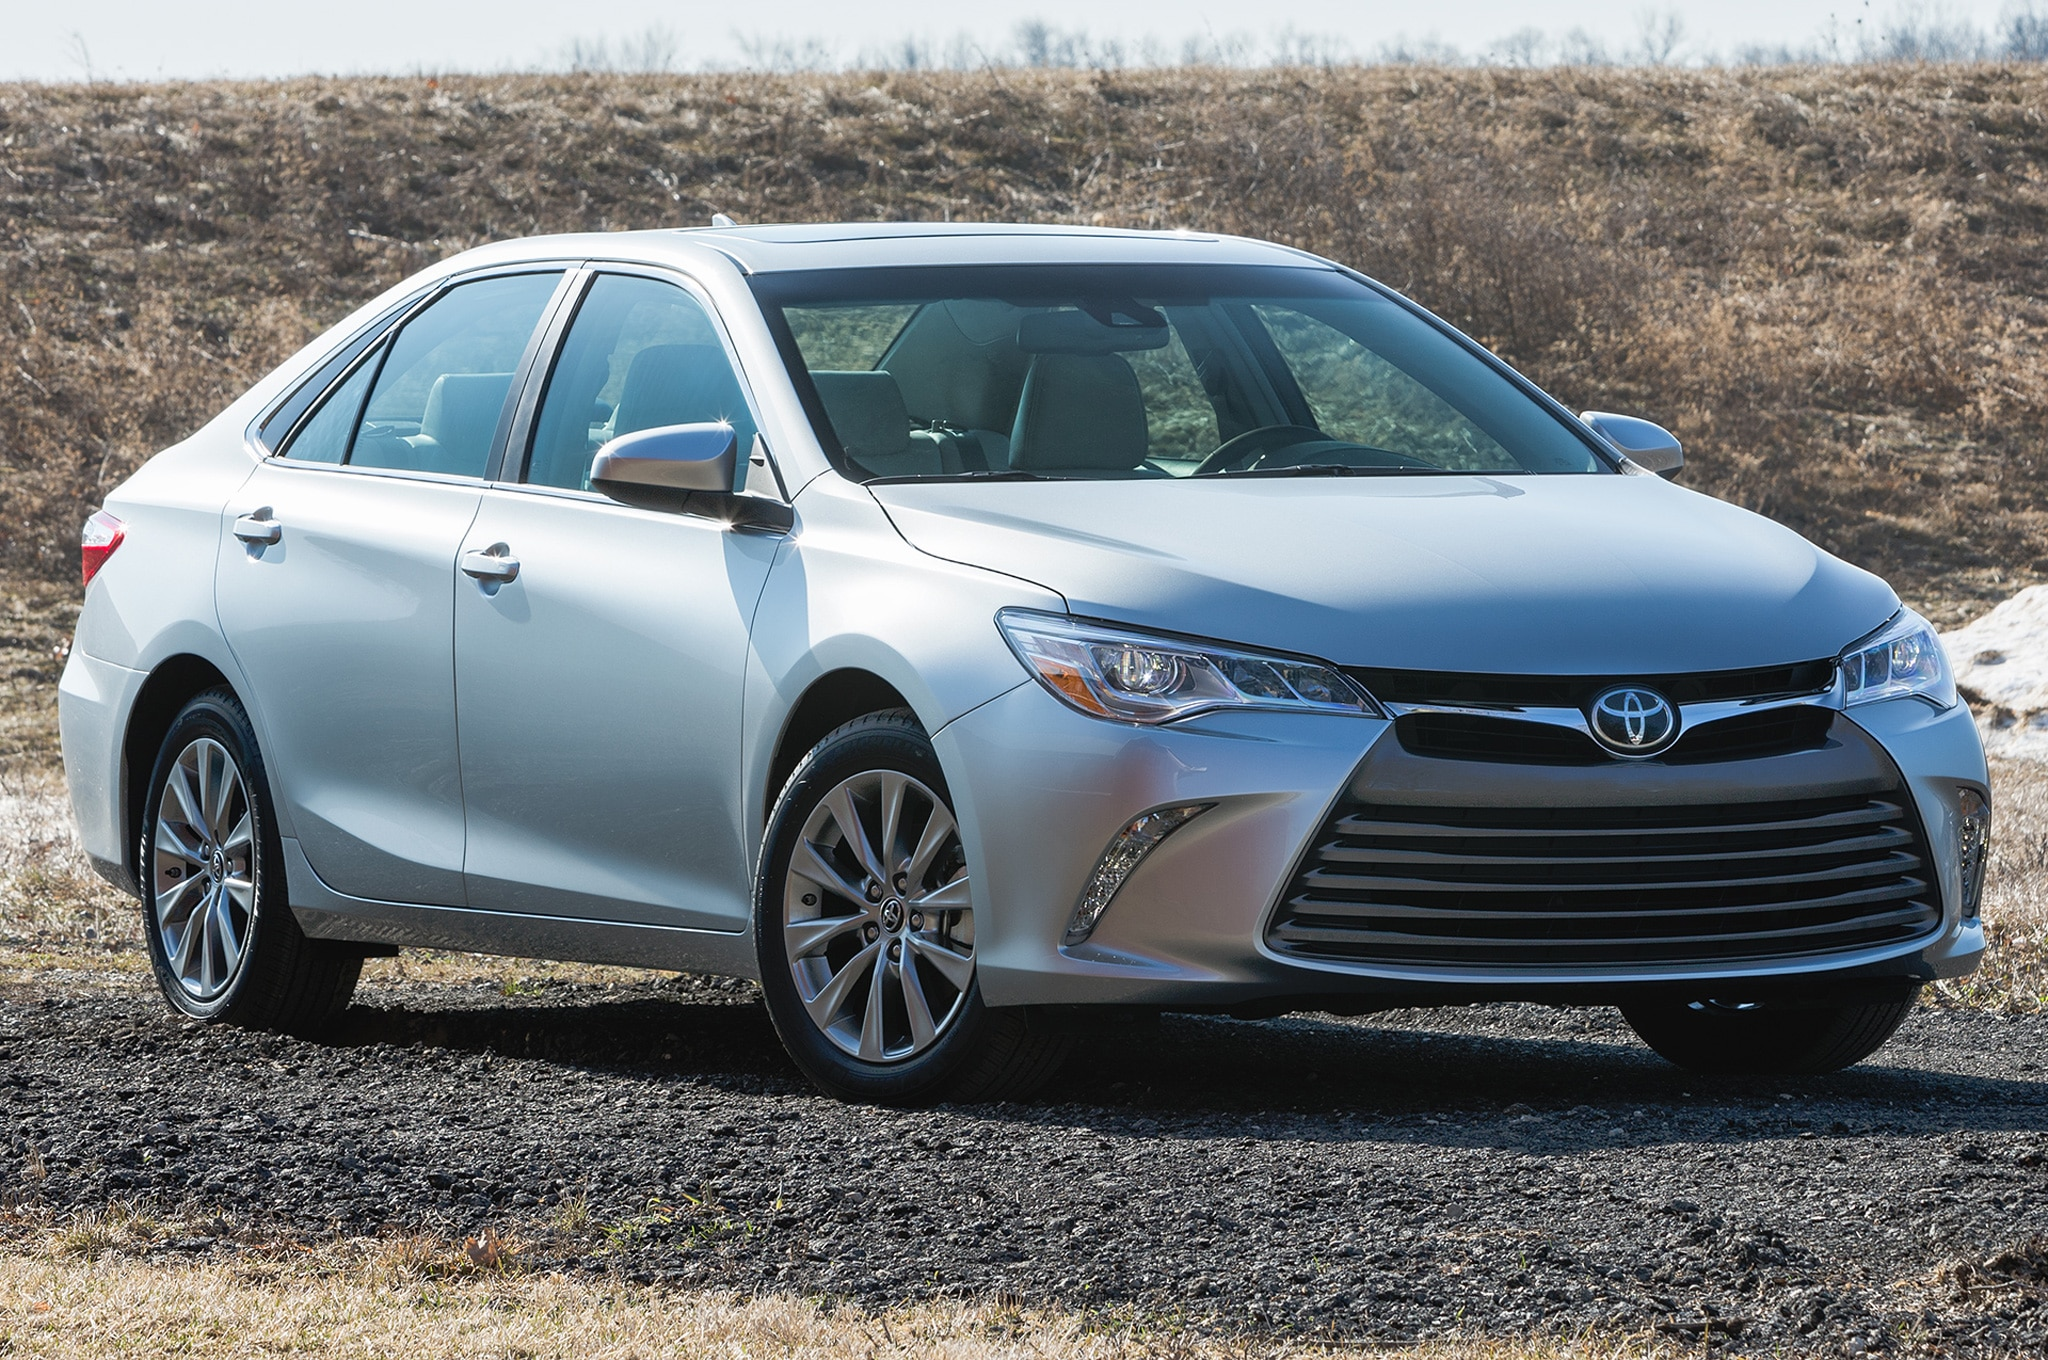 2015 toyota camry le. show more 2015 toyota camry le